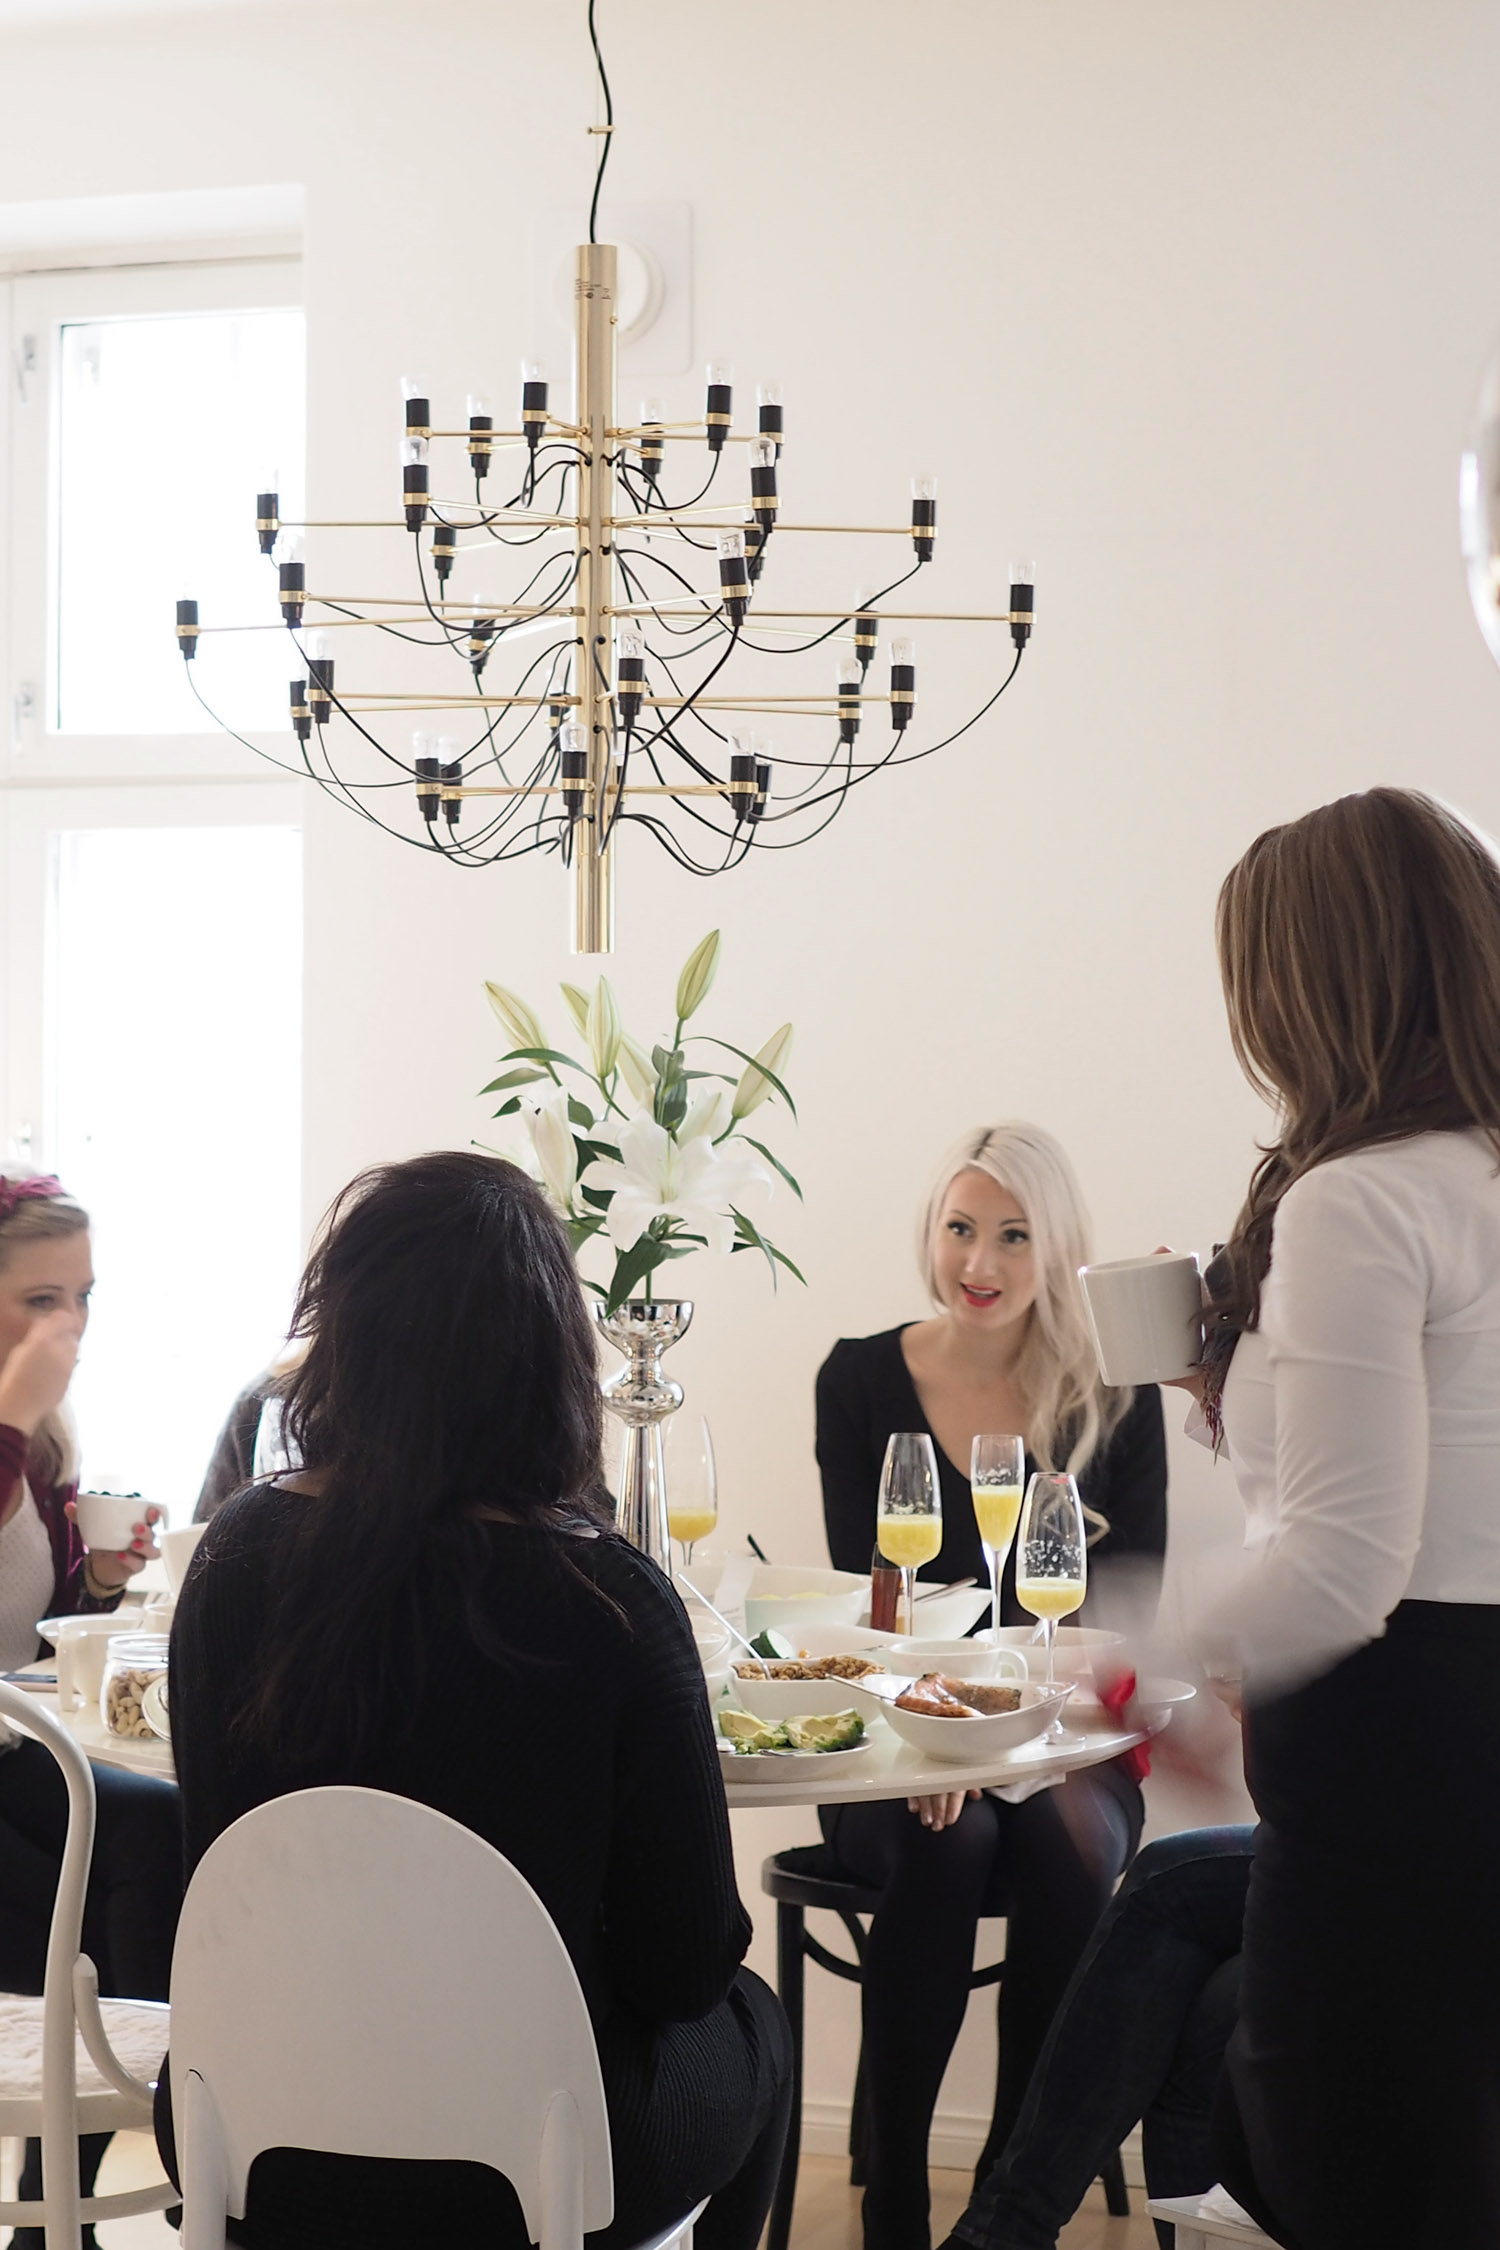 C and the city - Bachelorette party brunch - read more on the blog: //www.idealista.fi/charandthecity/2016/10/31/avec-sofie-polttarit